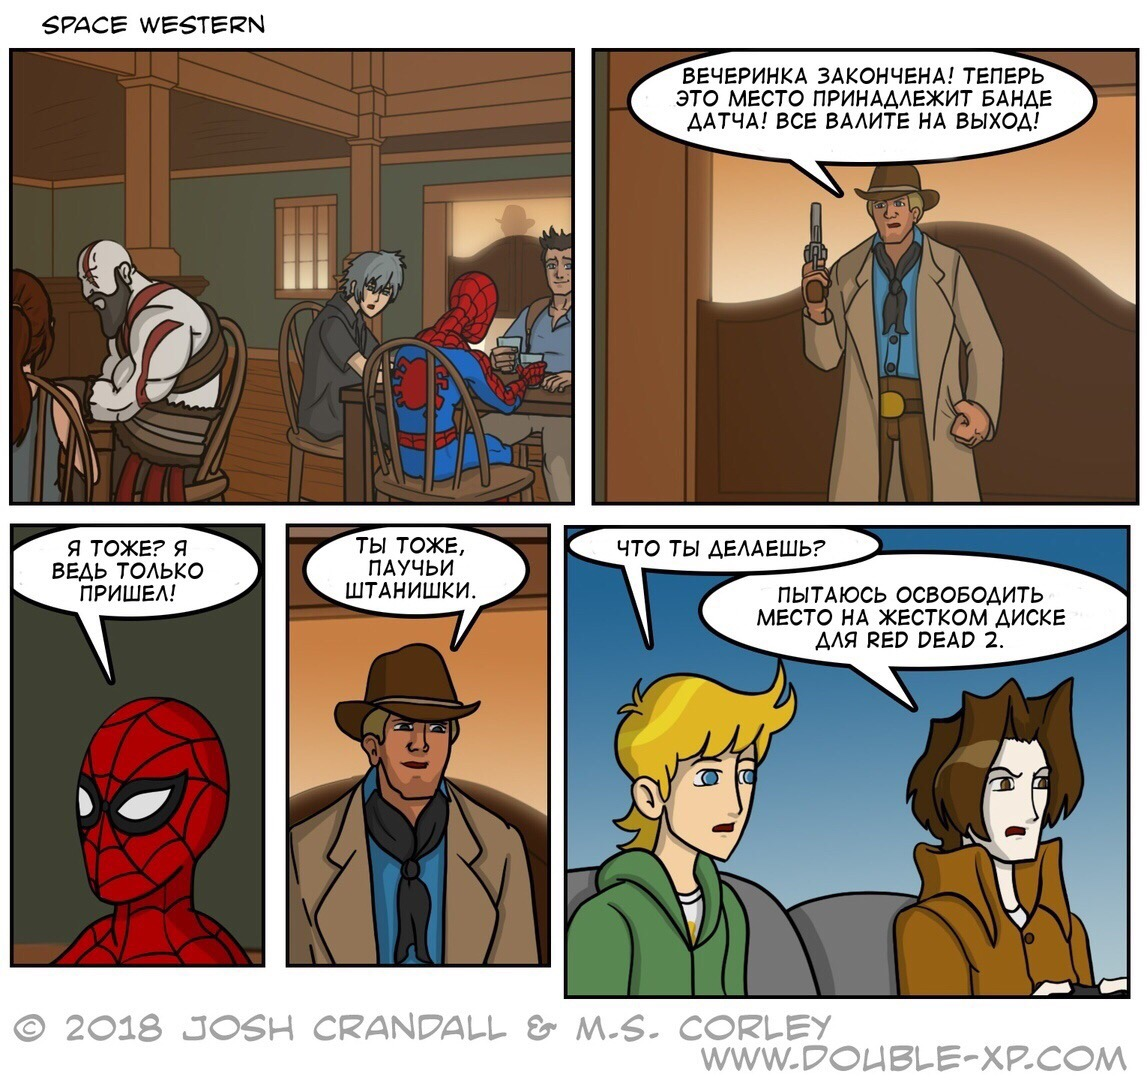 SFmZoKC3arE.jpg - Red Dead Redemption 2